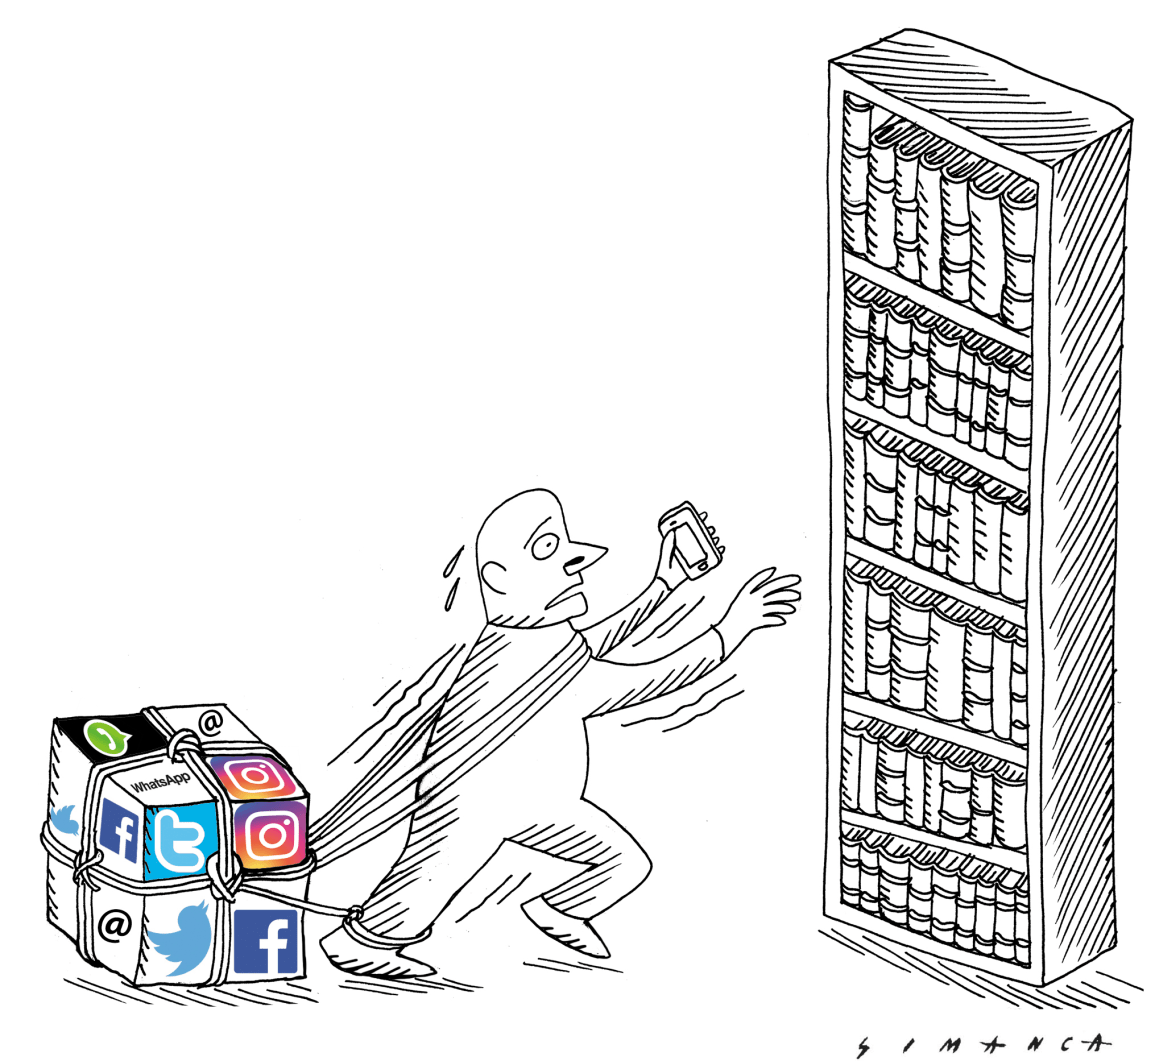 Social Network Smartphone and Books